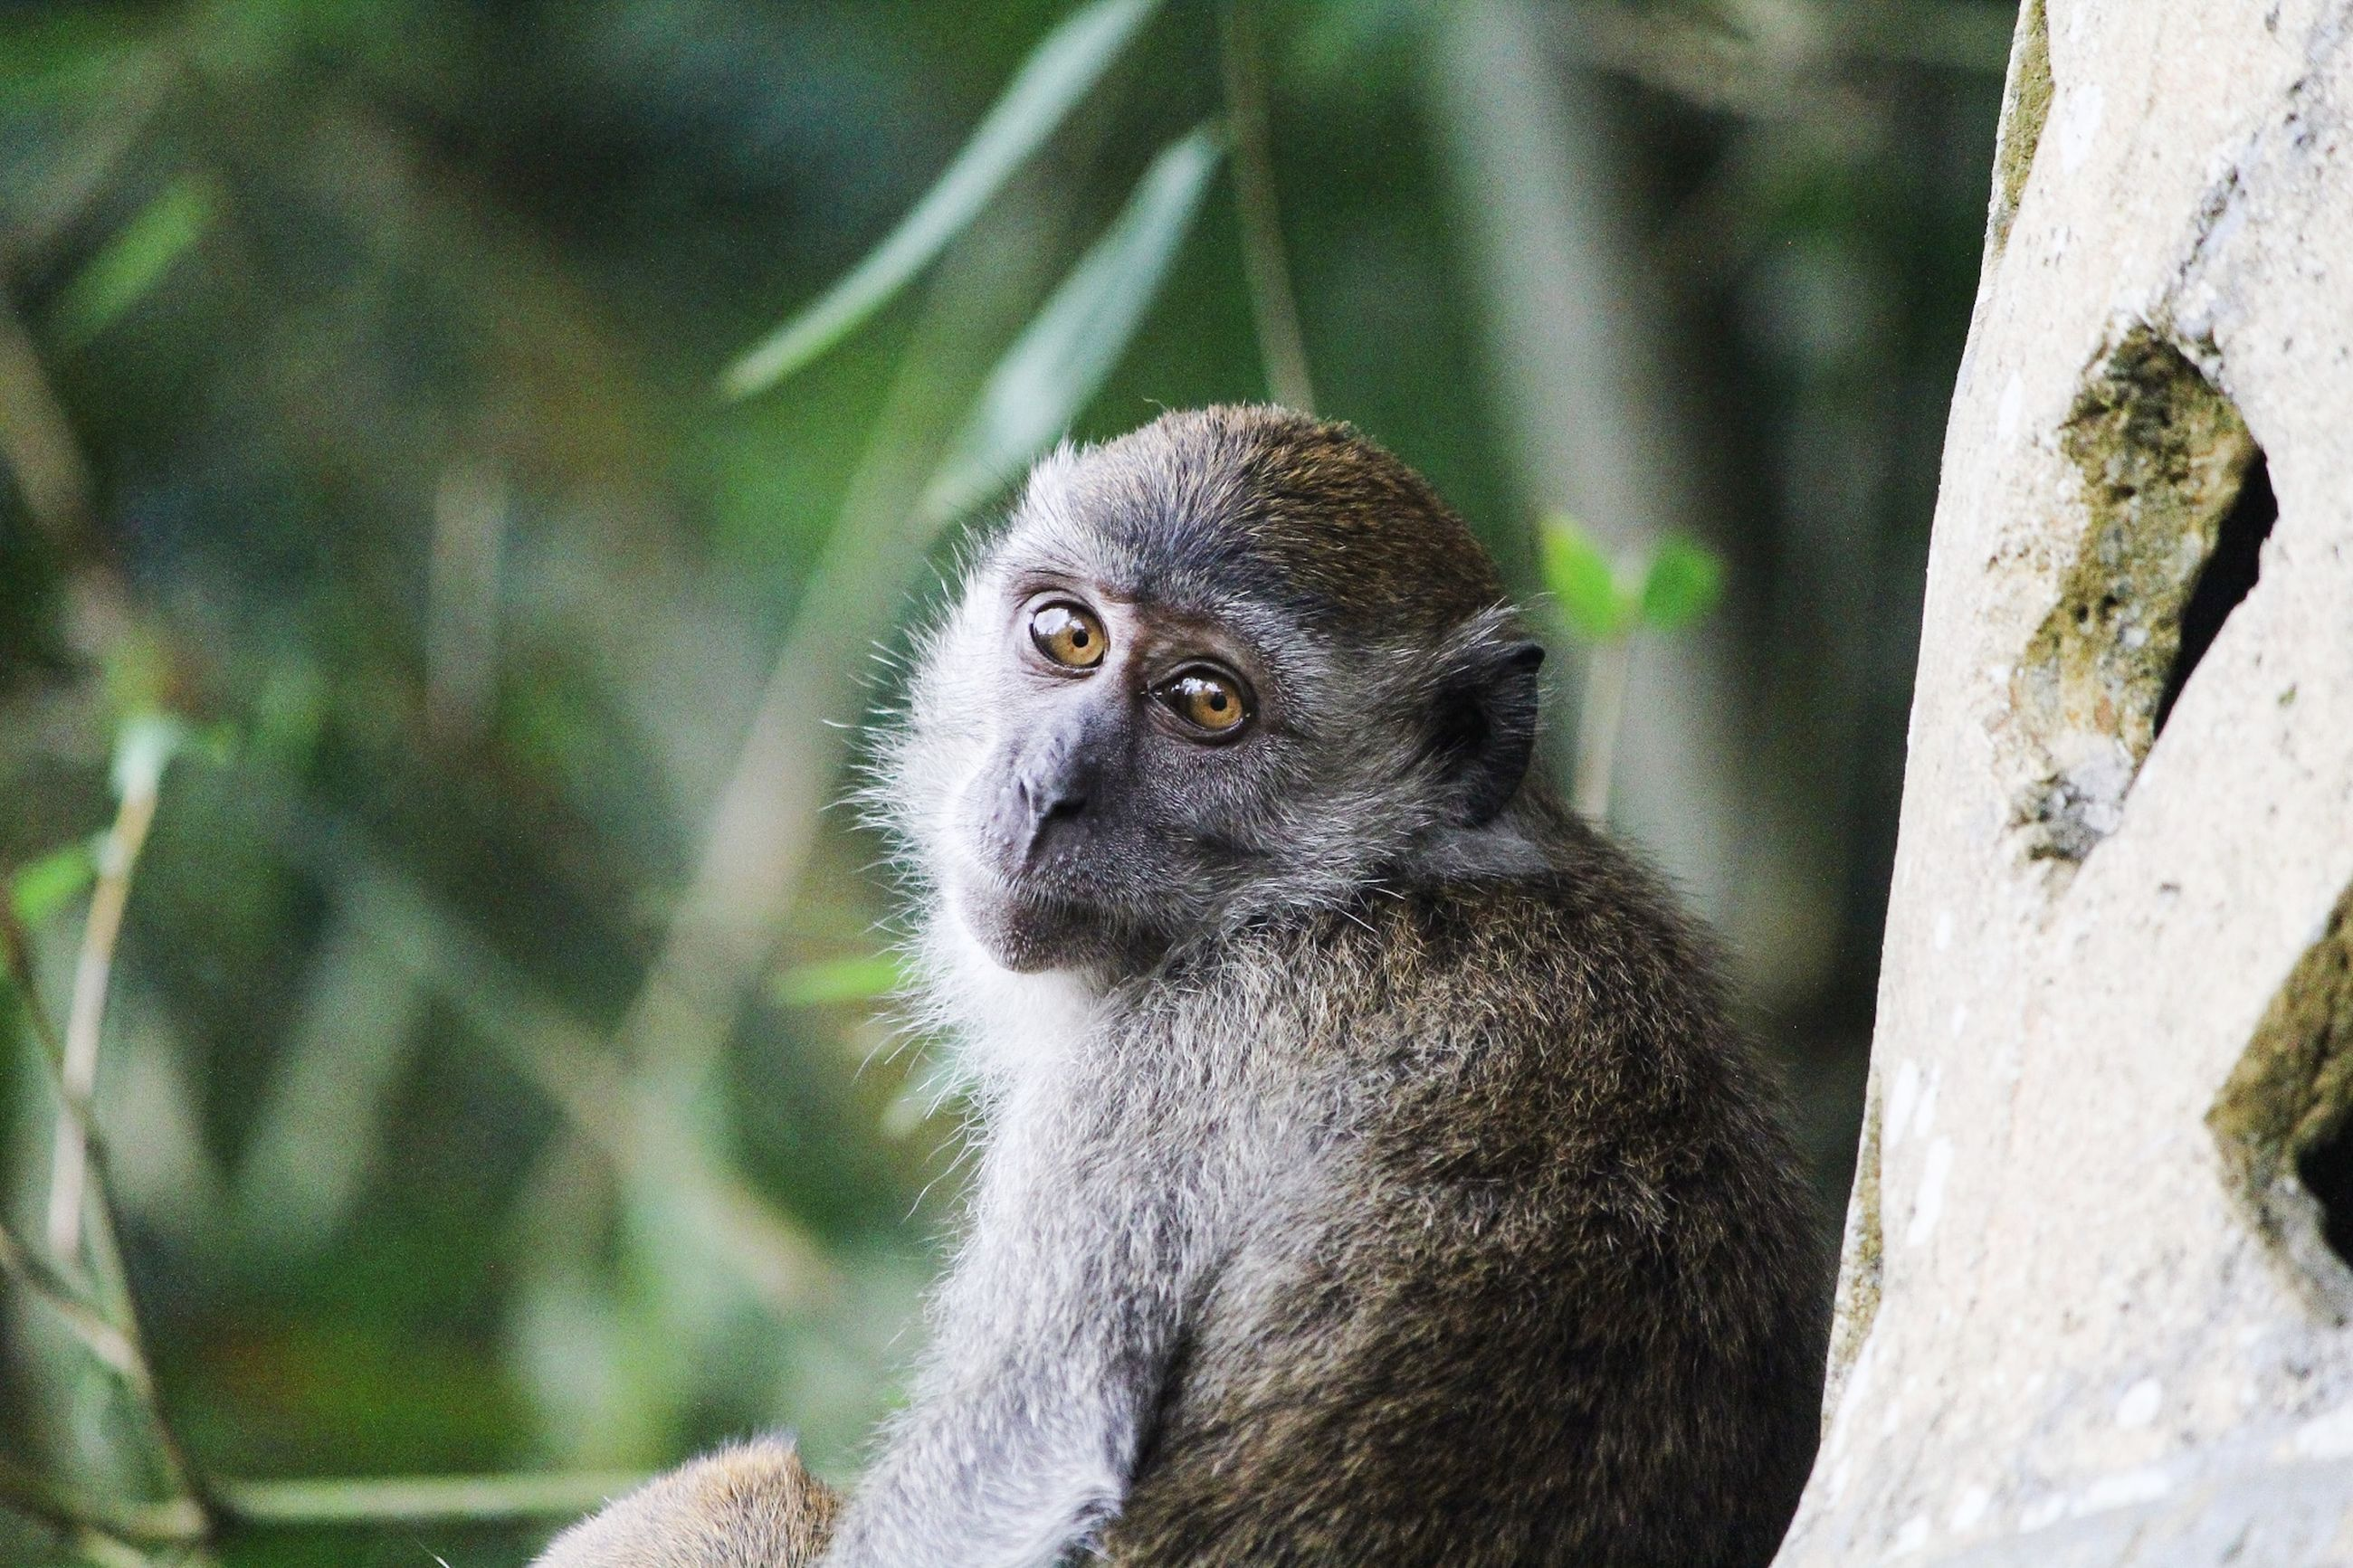 animal wildlife, animals in the wild, one animal, primate, mammal, vertebrate, focus on foreground, tree, day, looking, no people, close-up, nature, looking away, plant, portrait, outdoors, care